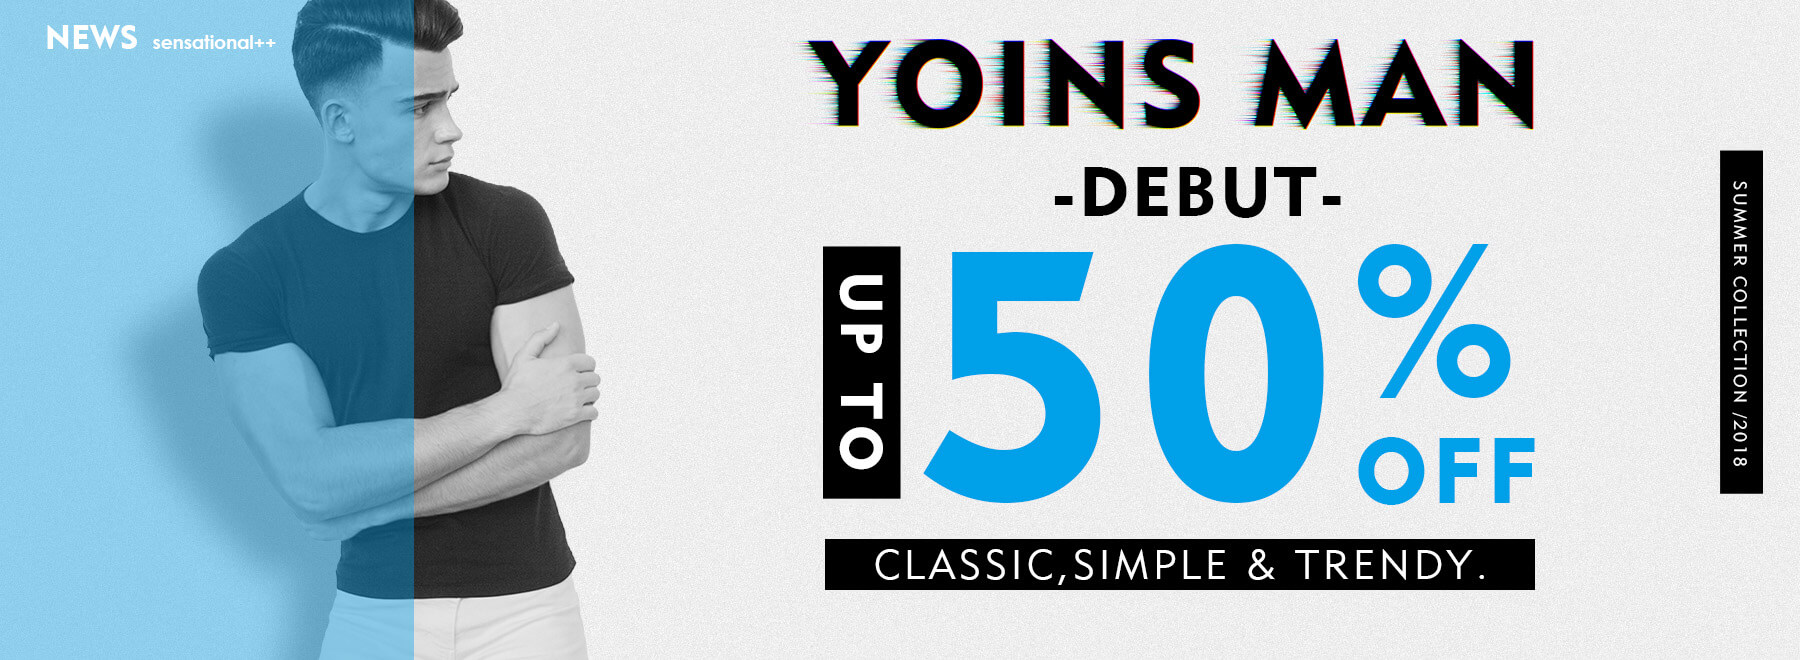 Yoins Fathers Day Offer